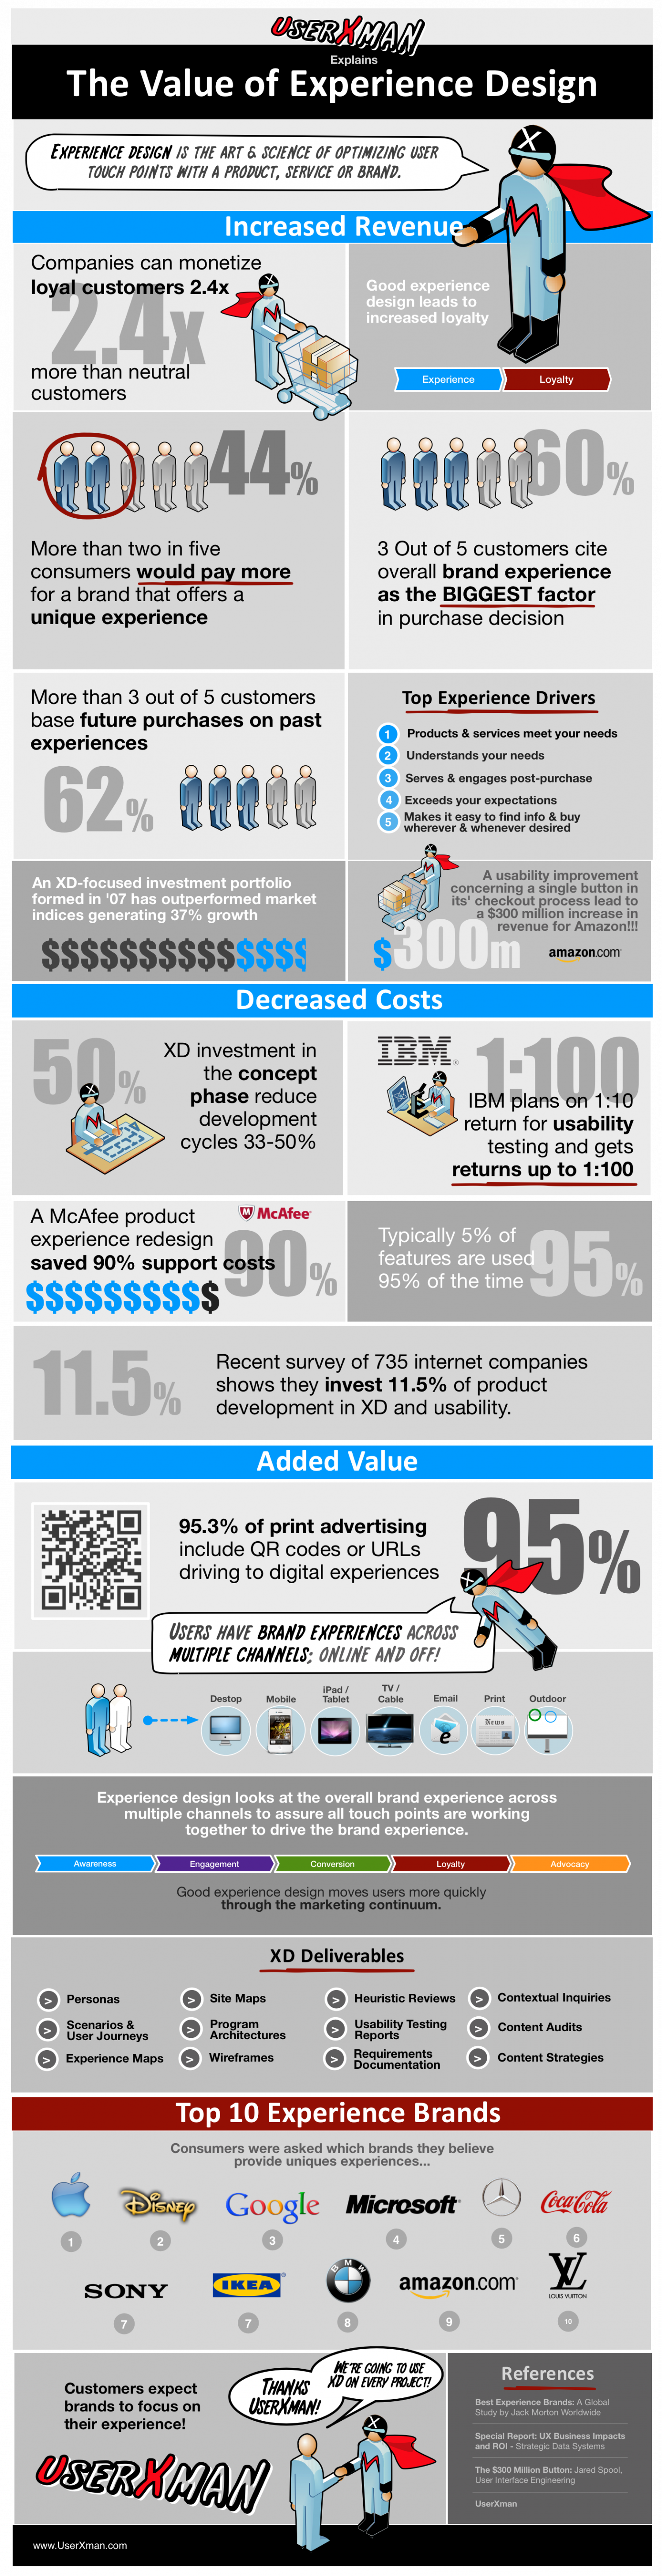 The Value of Experience Design Infographic